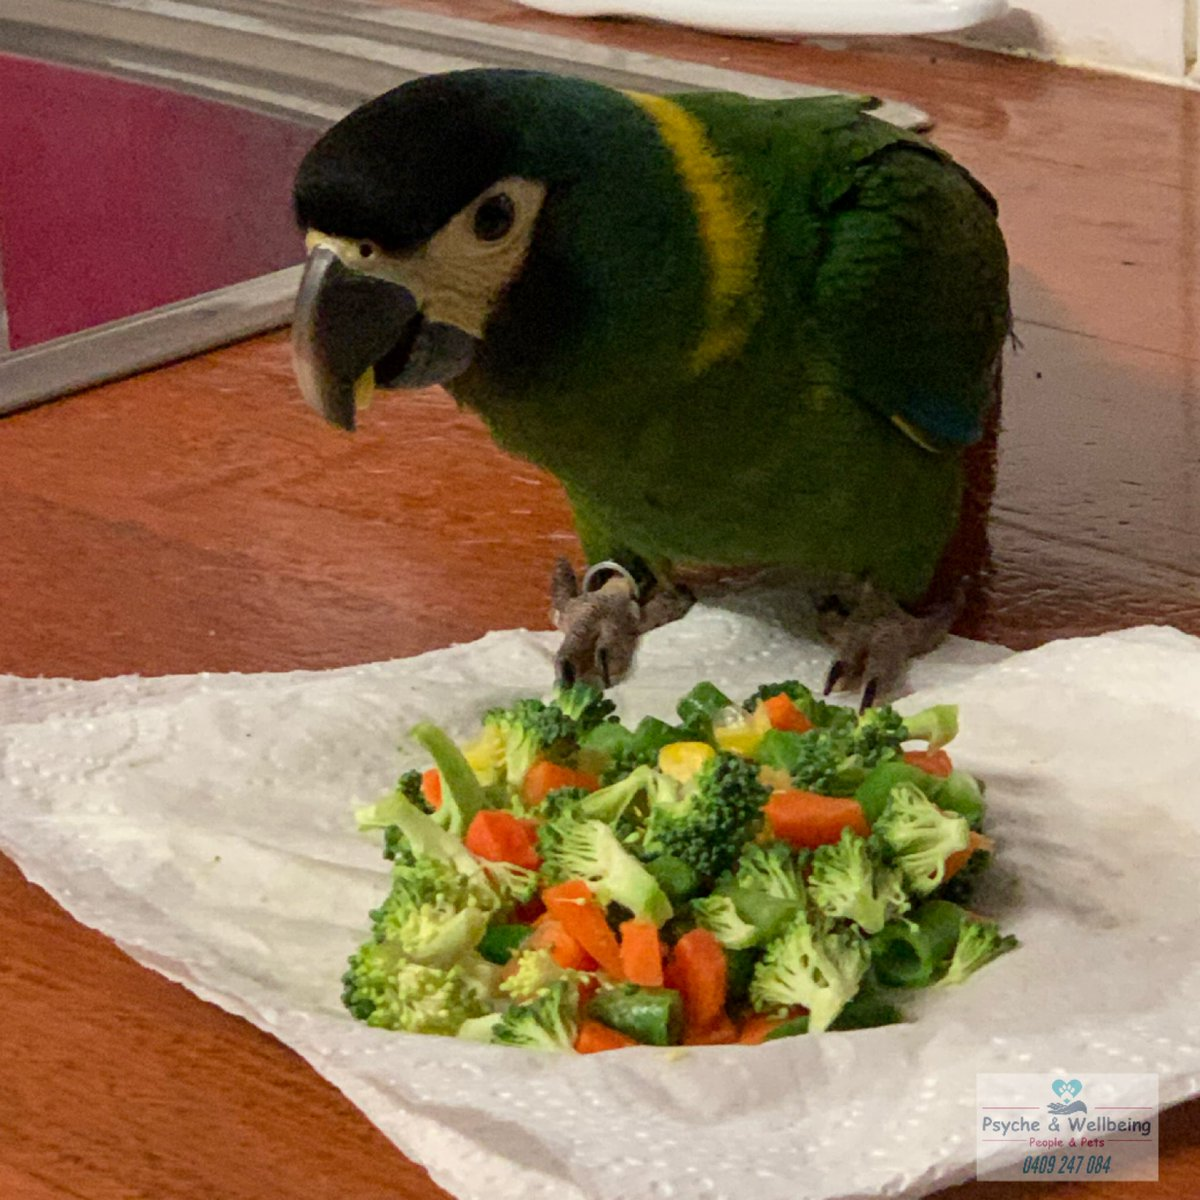 Devon's veggies didn't make it into the bowl...#devontheyellowcollaredmacaw #engagednotcaged #psycheandwellbeing #patsyannewestpic.twitter.com/pcwljVOOJ1